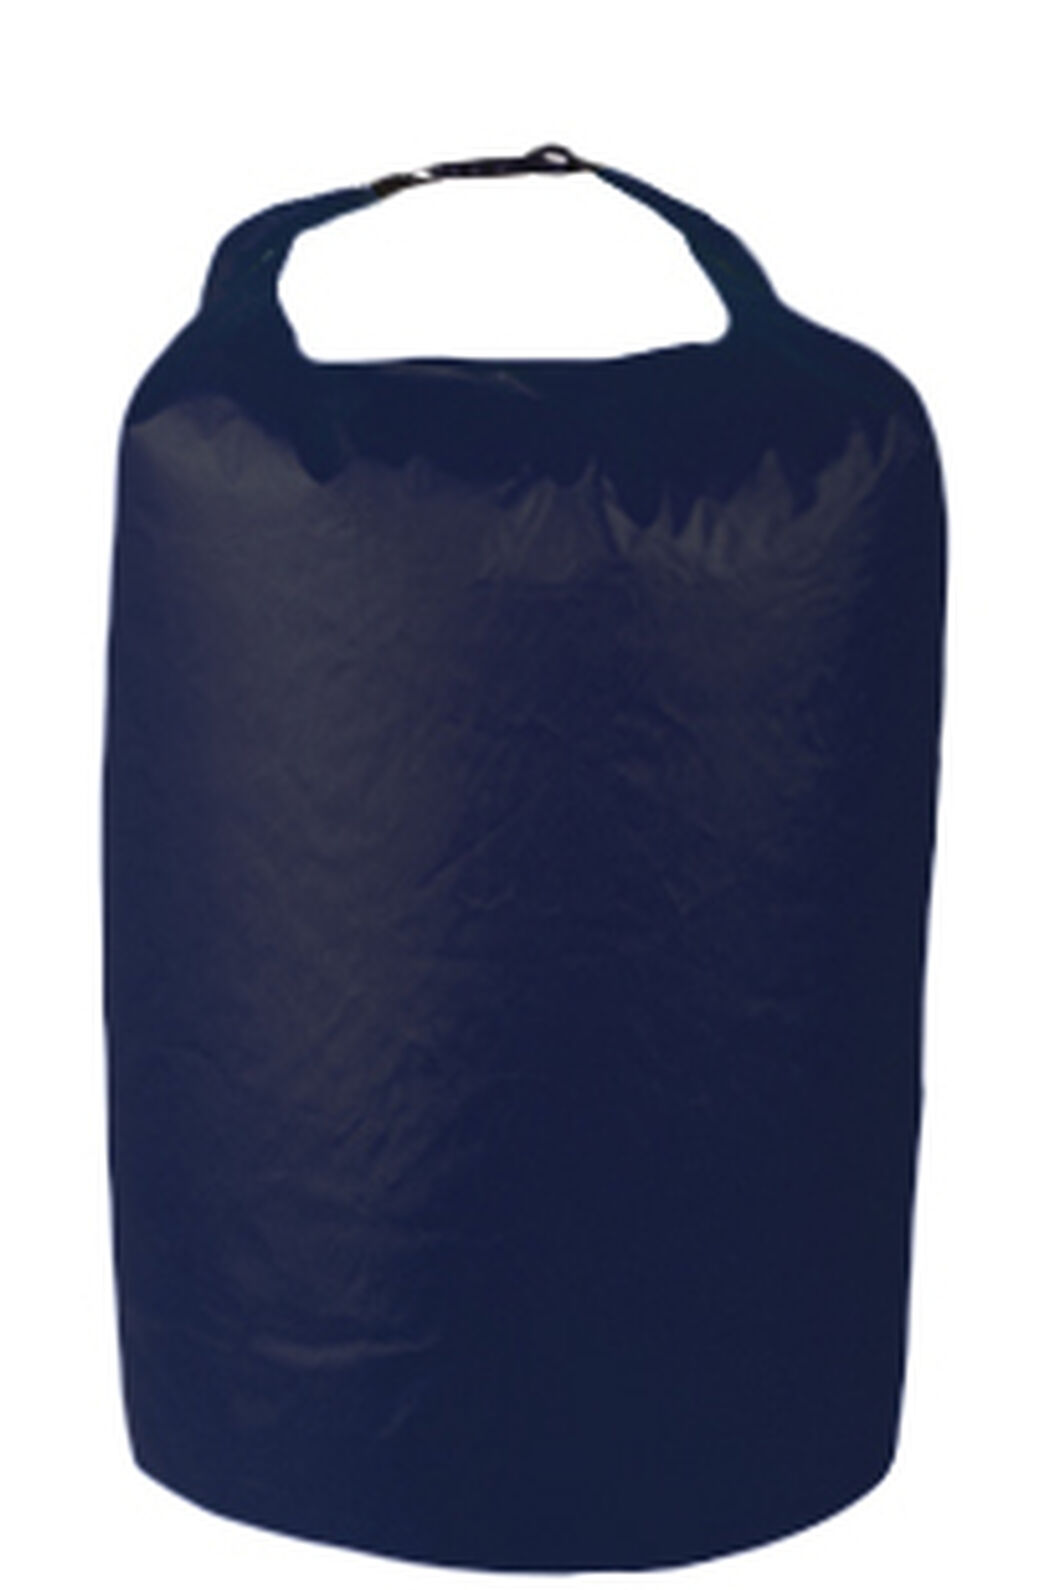 Macpac Ultralight Dry Bag 30 L, Sodalite Blue, hi-res